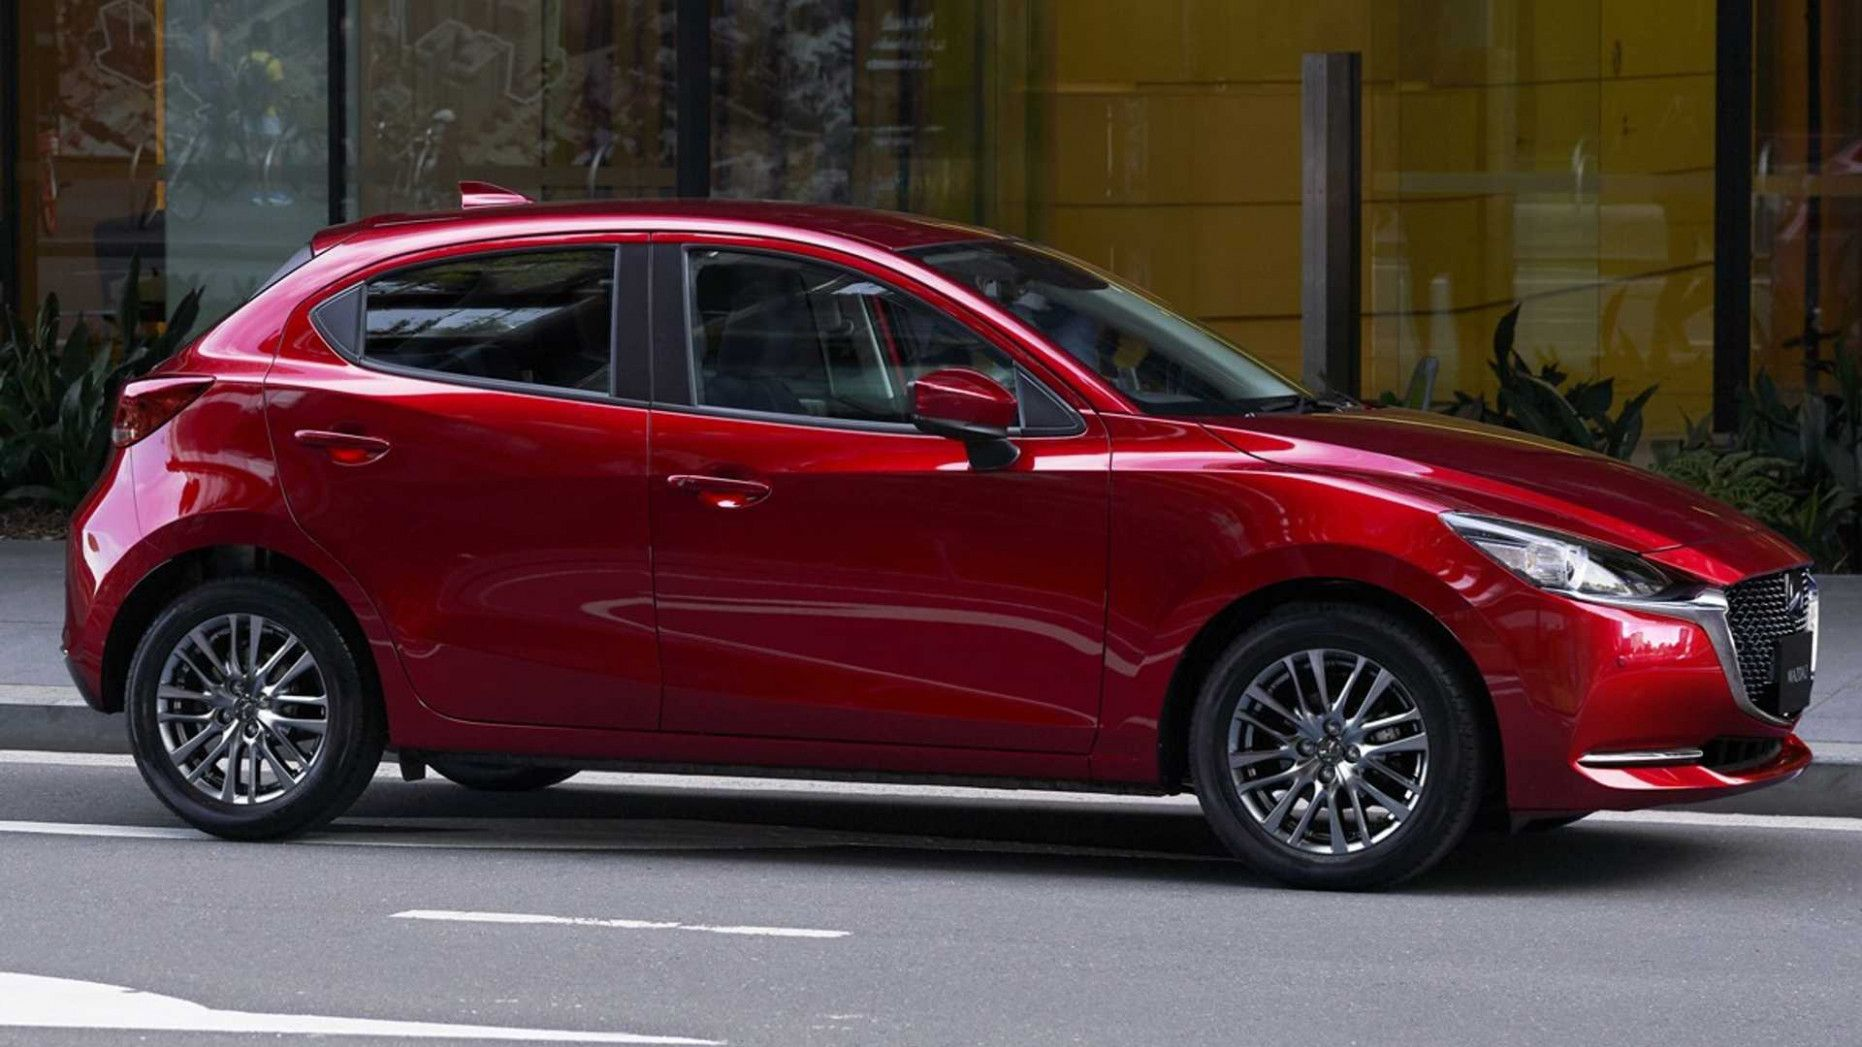 Mazda 2 Hatchback 2020 Performance And New Engine in 2020